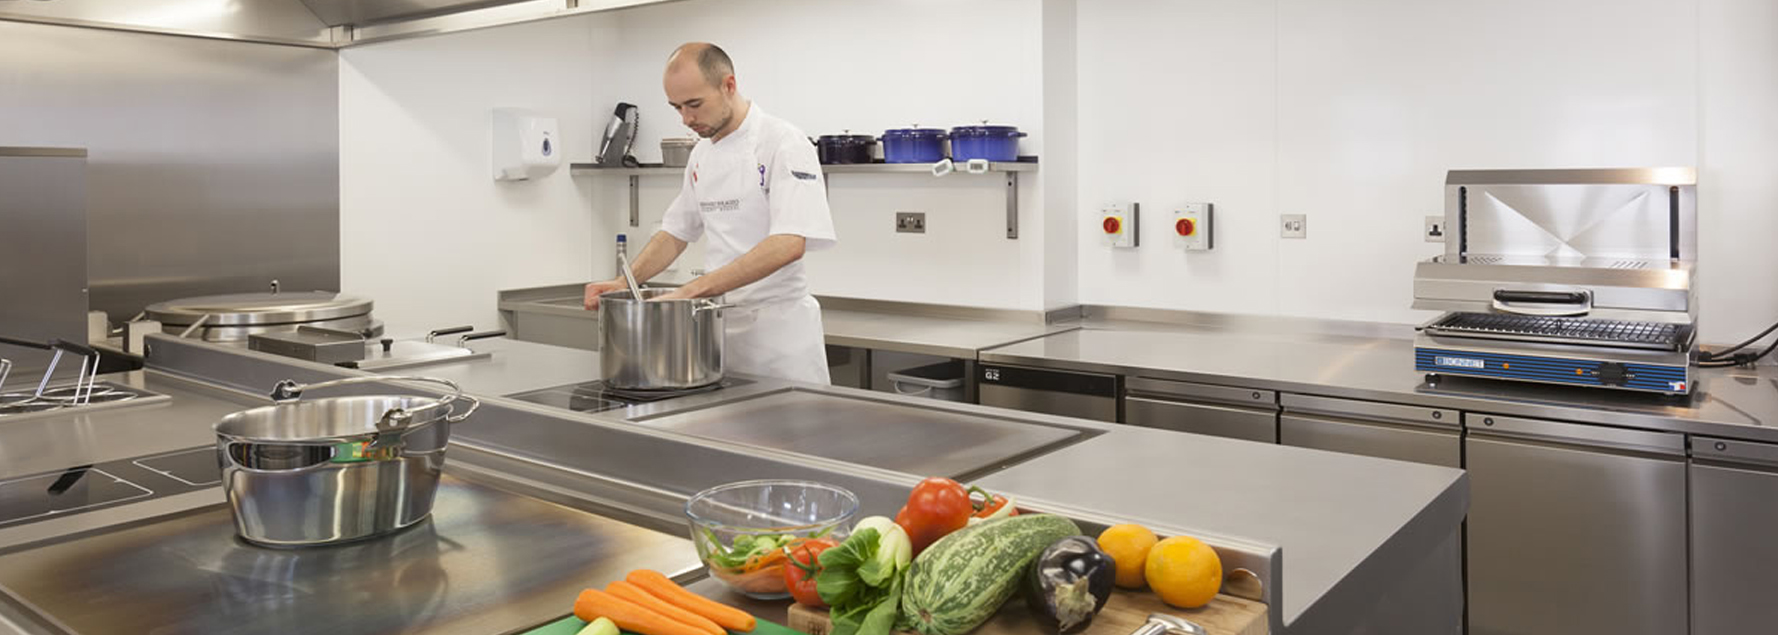 Specialist Solutions For Smart Kitchens